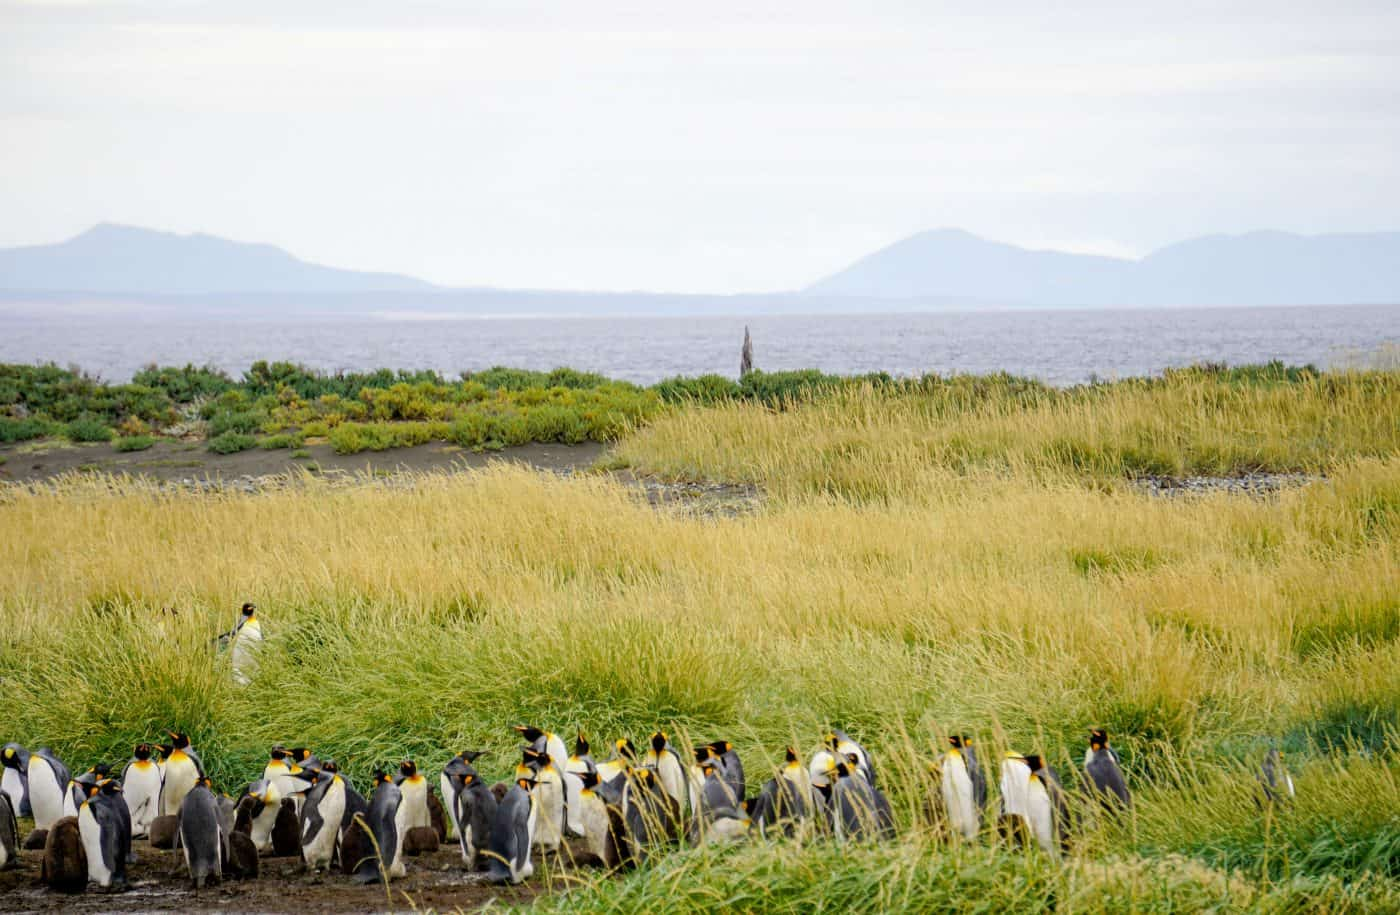 King Penguin Colony of Punto Arenas chile